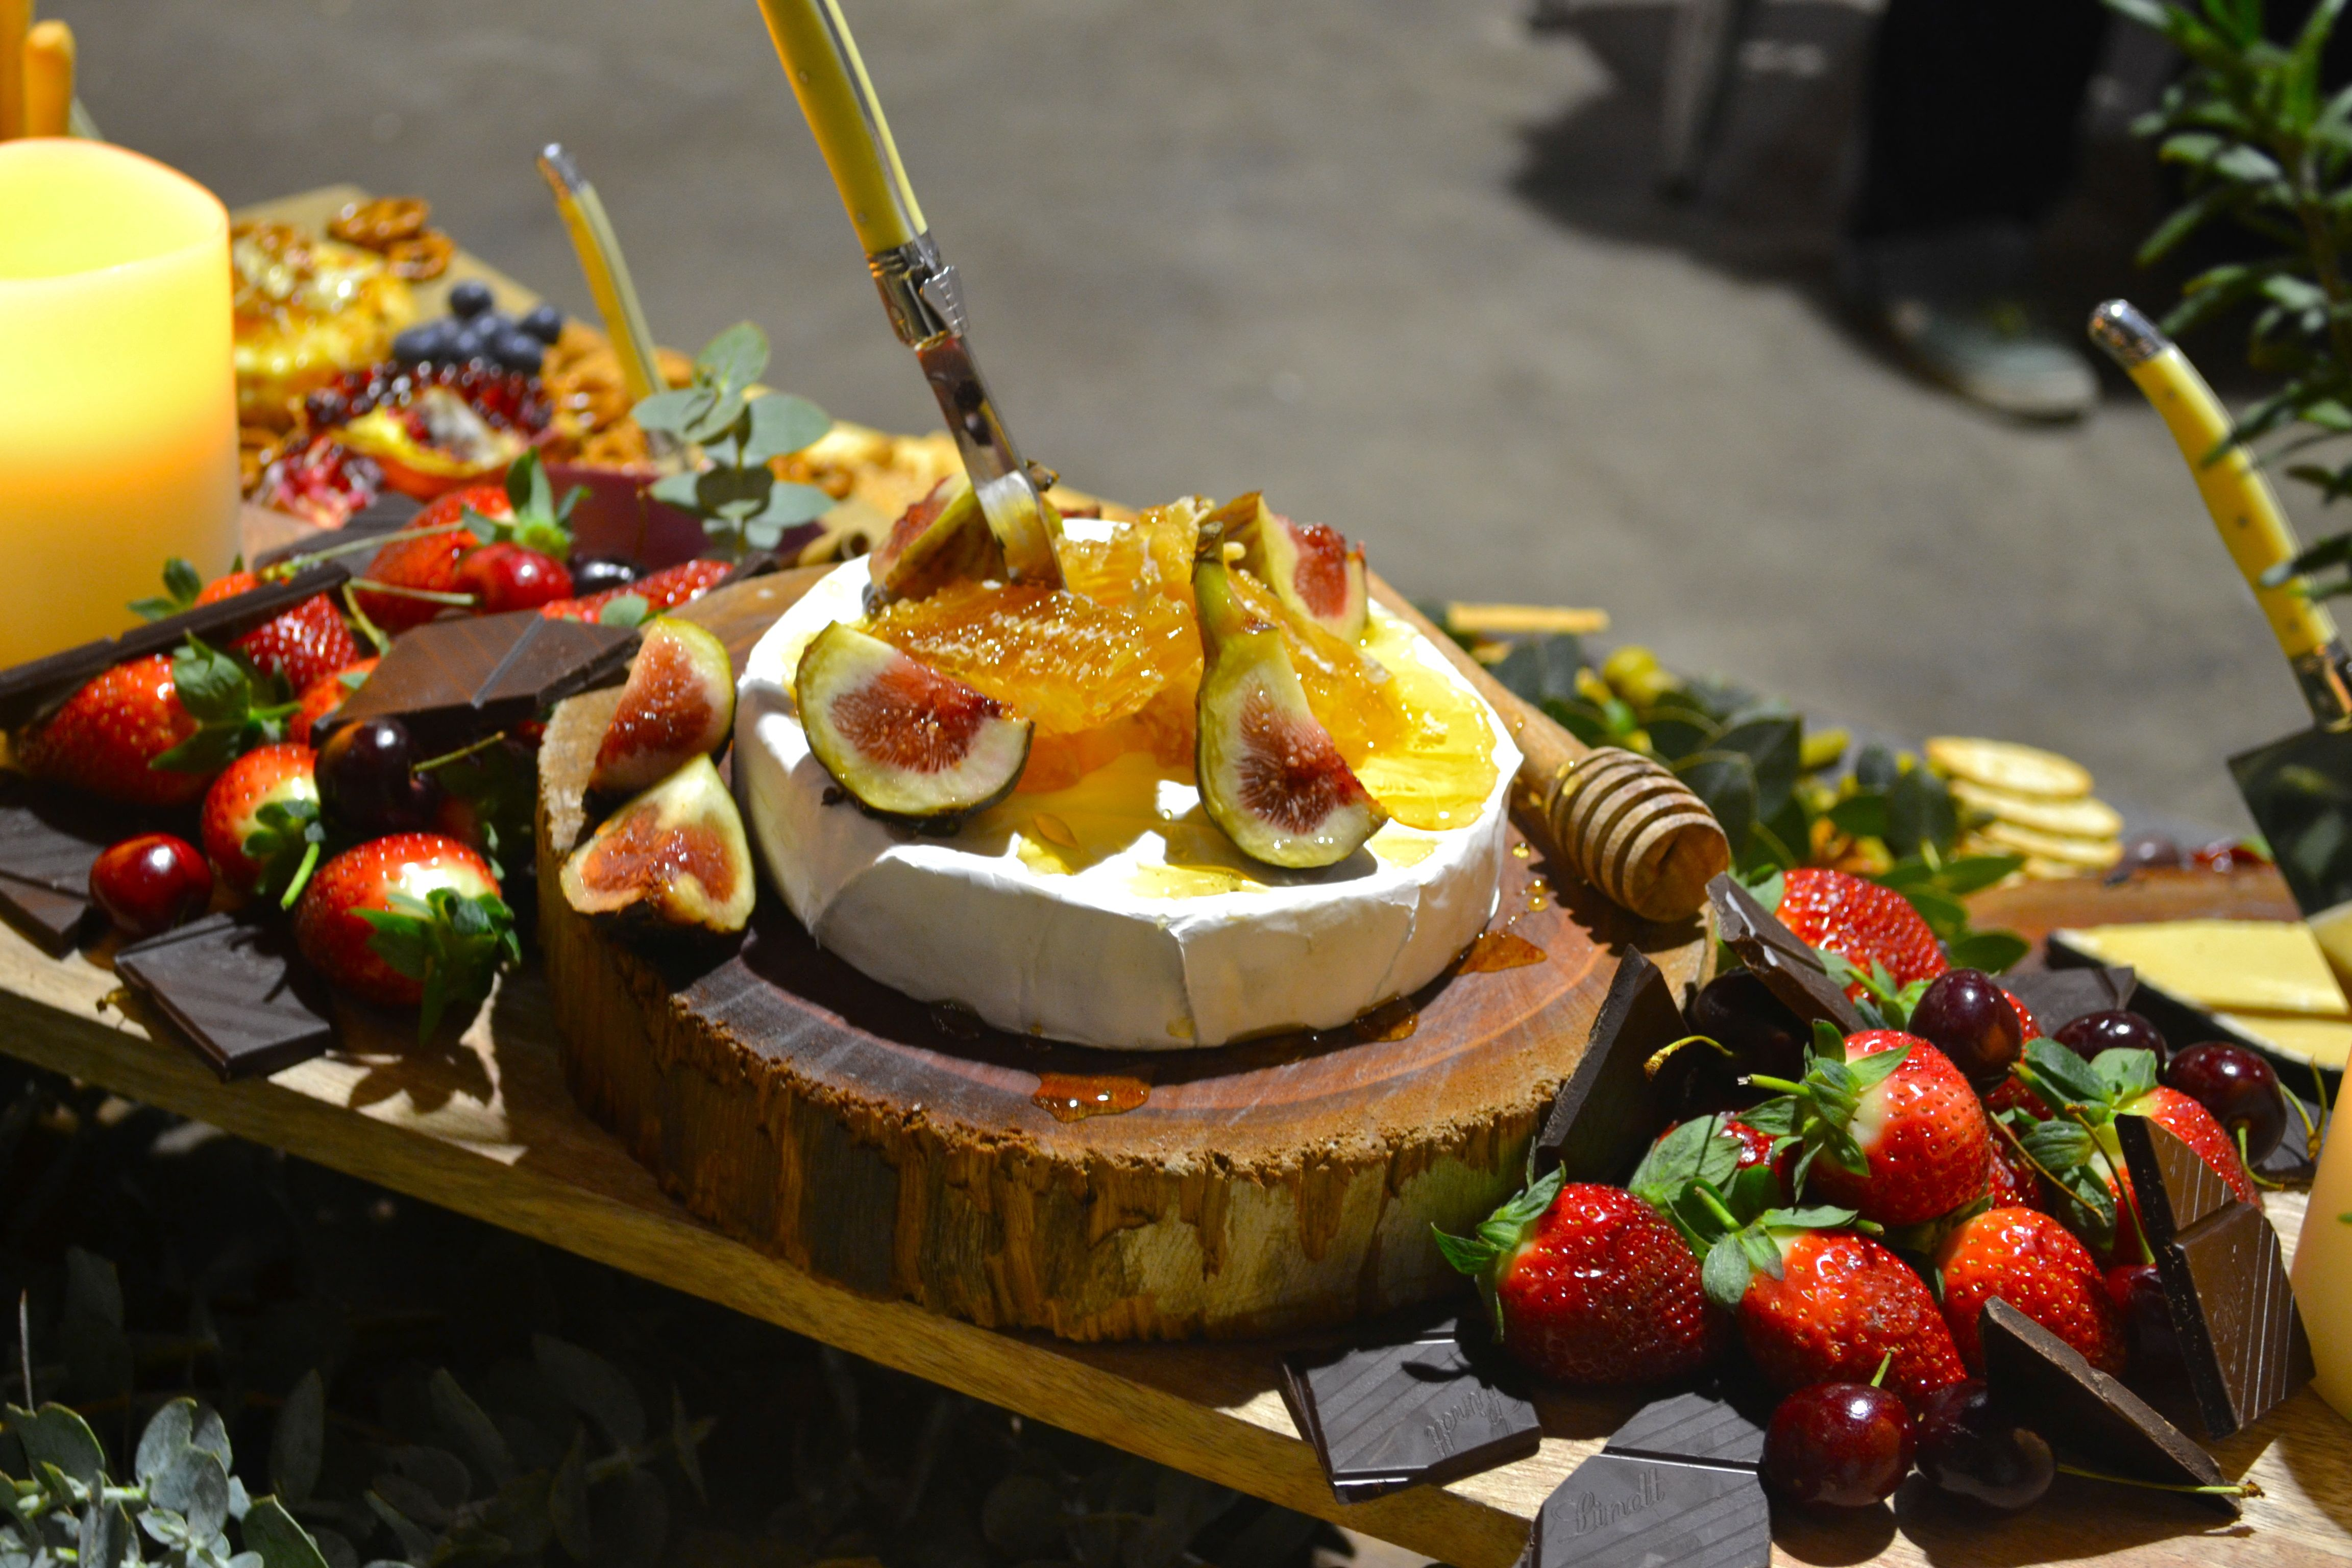 Honey-drizzled brie with fresh figs, surrounded by dark chocolate and strawberries.